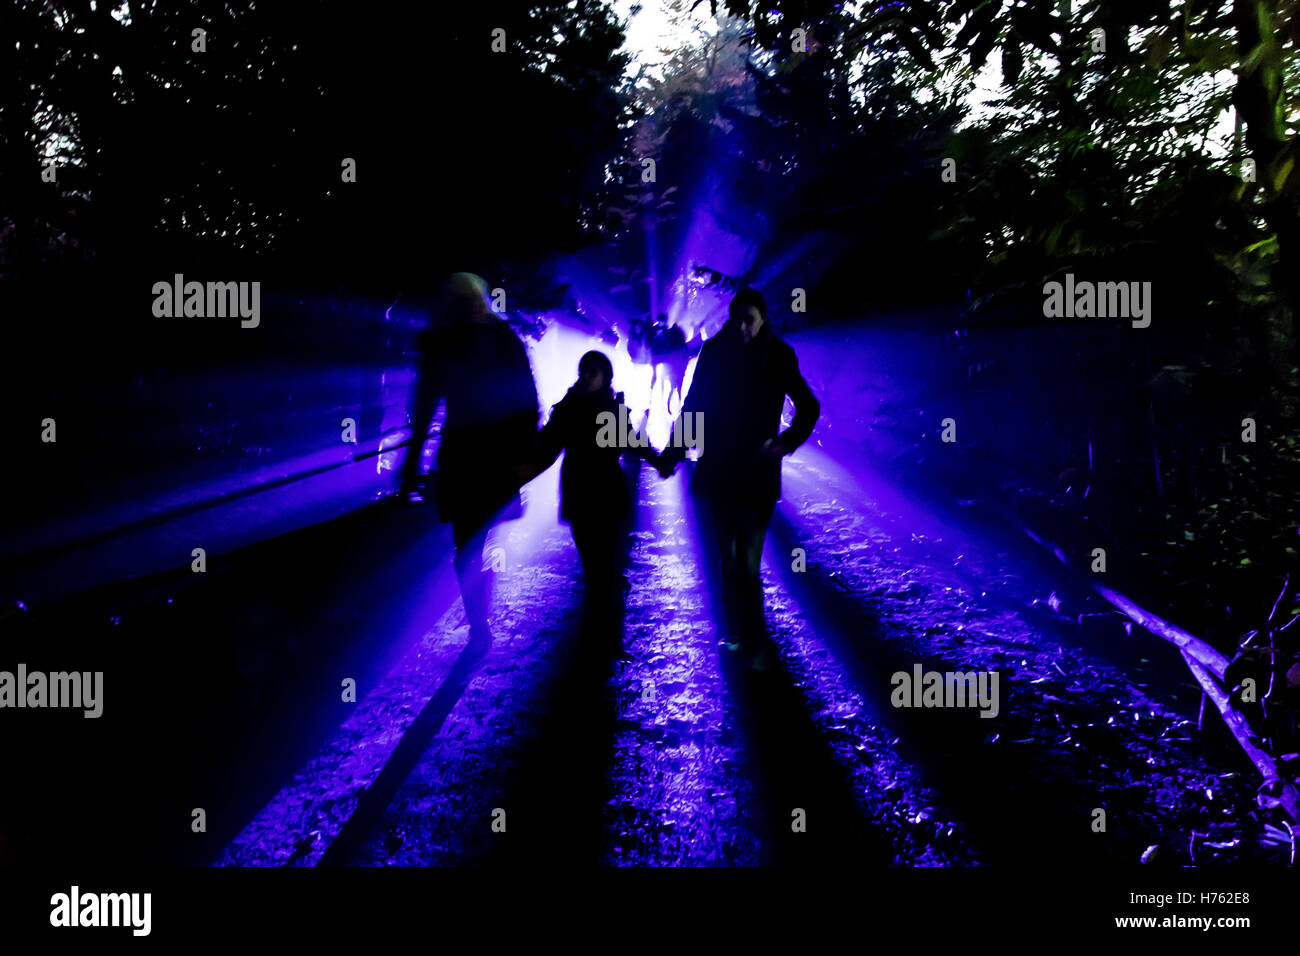 People walking at night through a park, illuminated from behind, mysterious atmosphere, big contrast, long shadows, - Stock Image